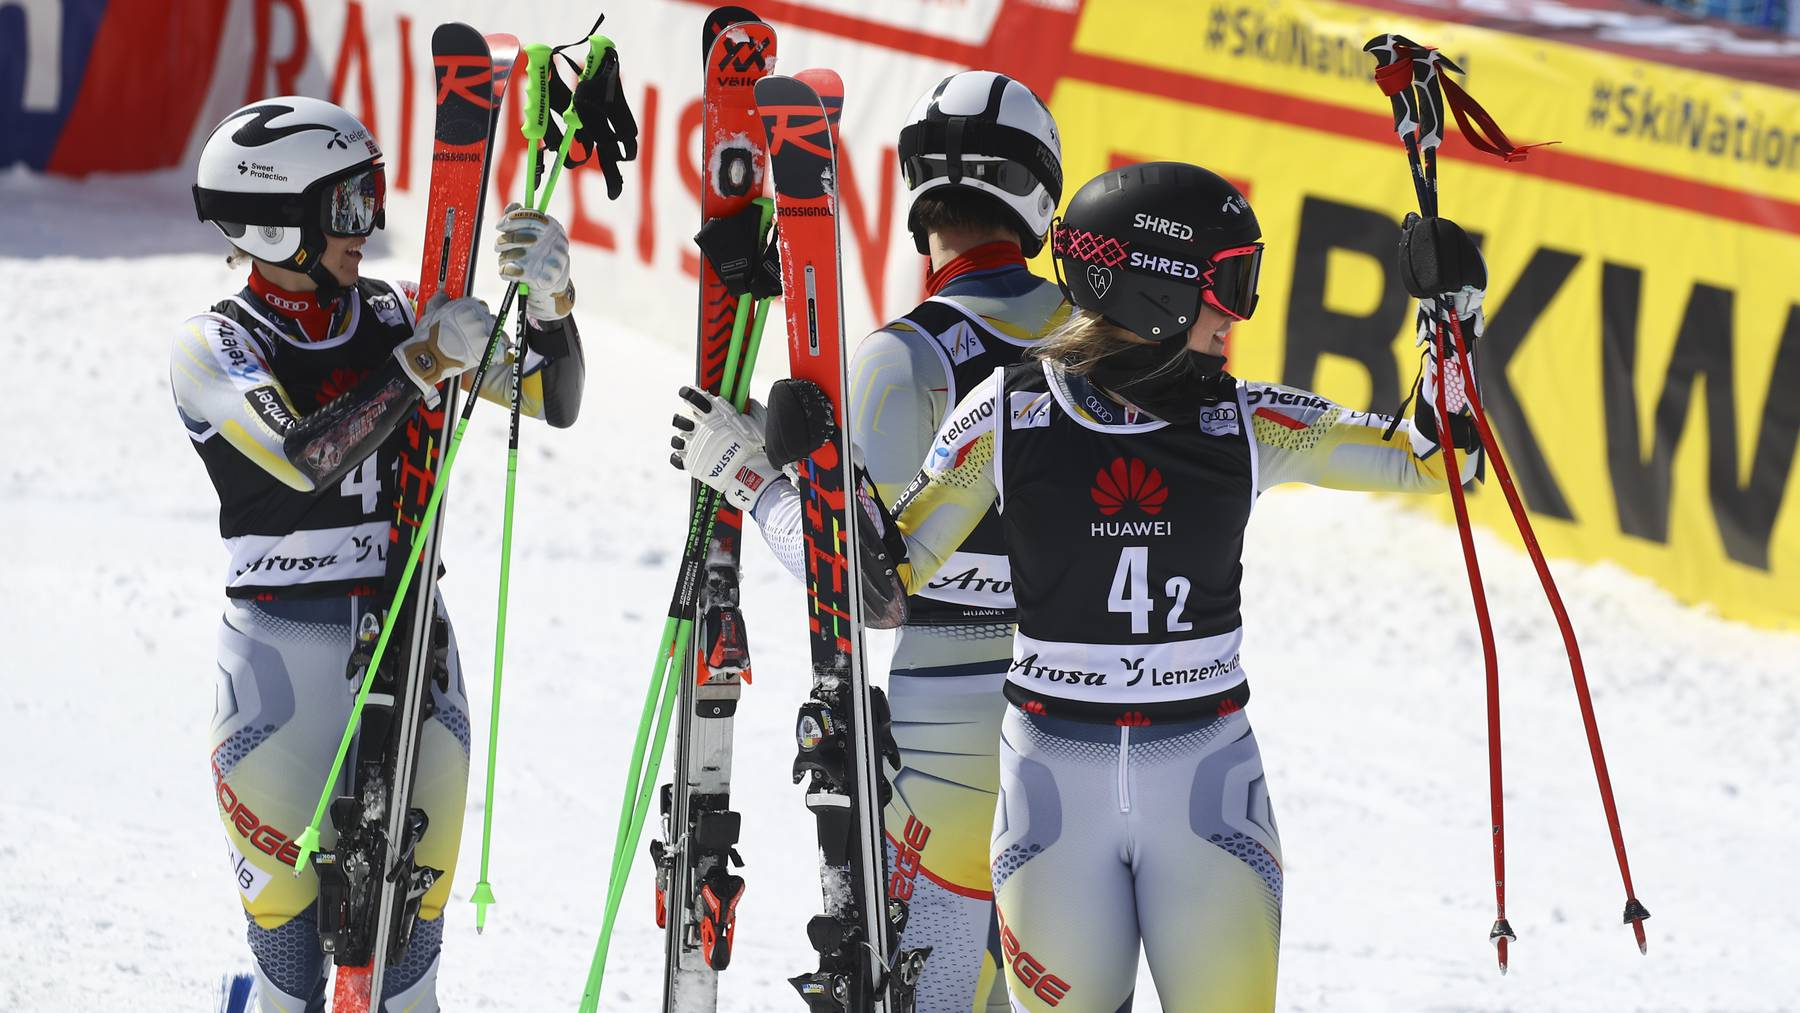 Norway's Kristina Riis Johannessen, right, and Norway team celebrate during an alpine ski, mixed World Cup team parallel event, in Lenzerheide, Switzerland, Friday, March 19, 2021.